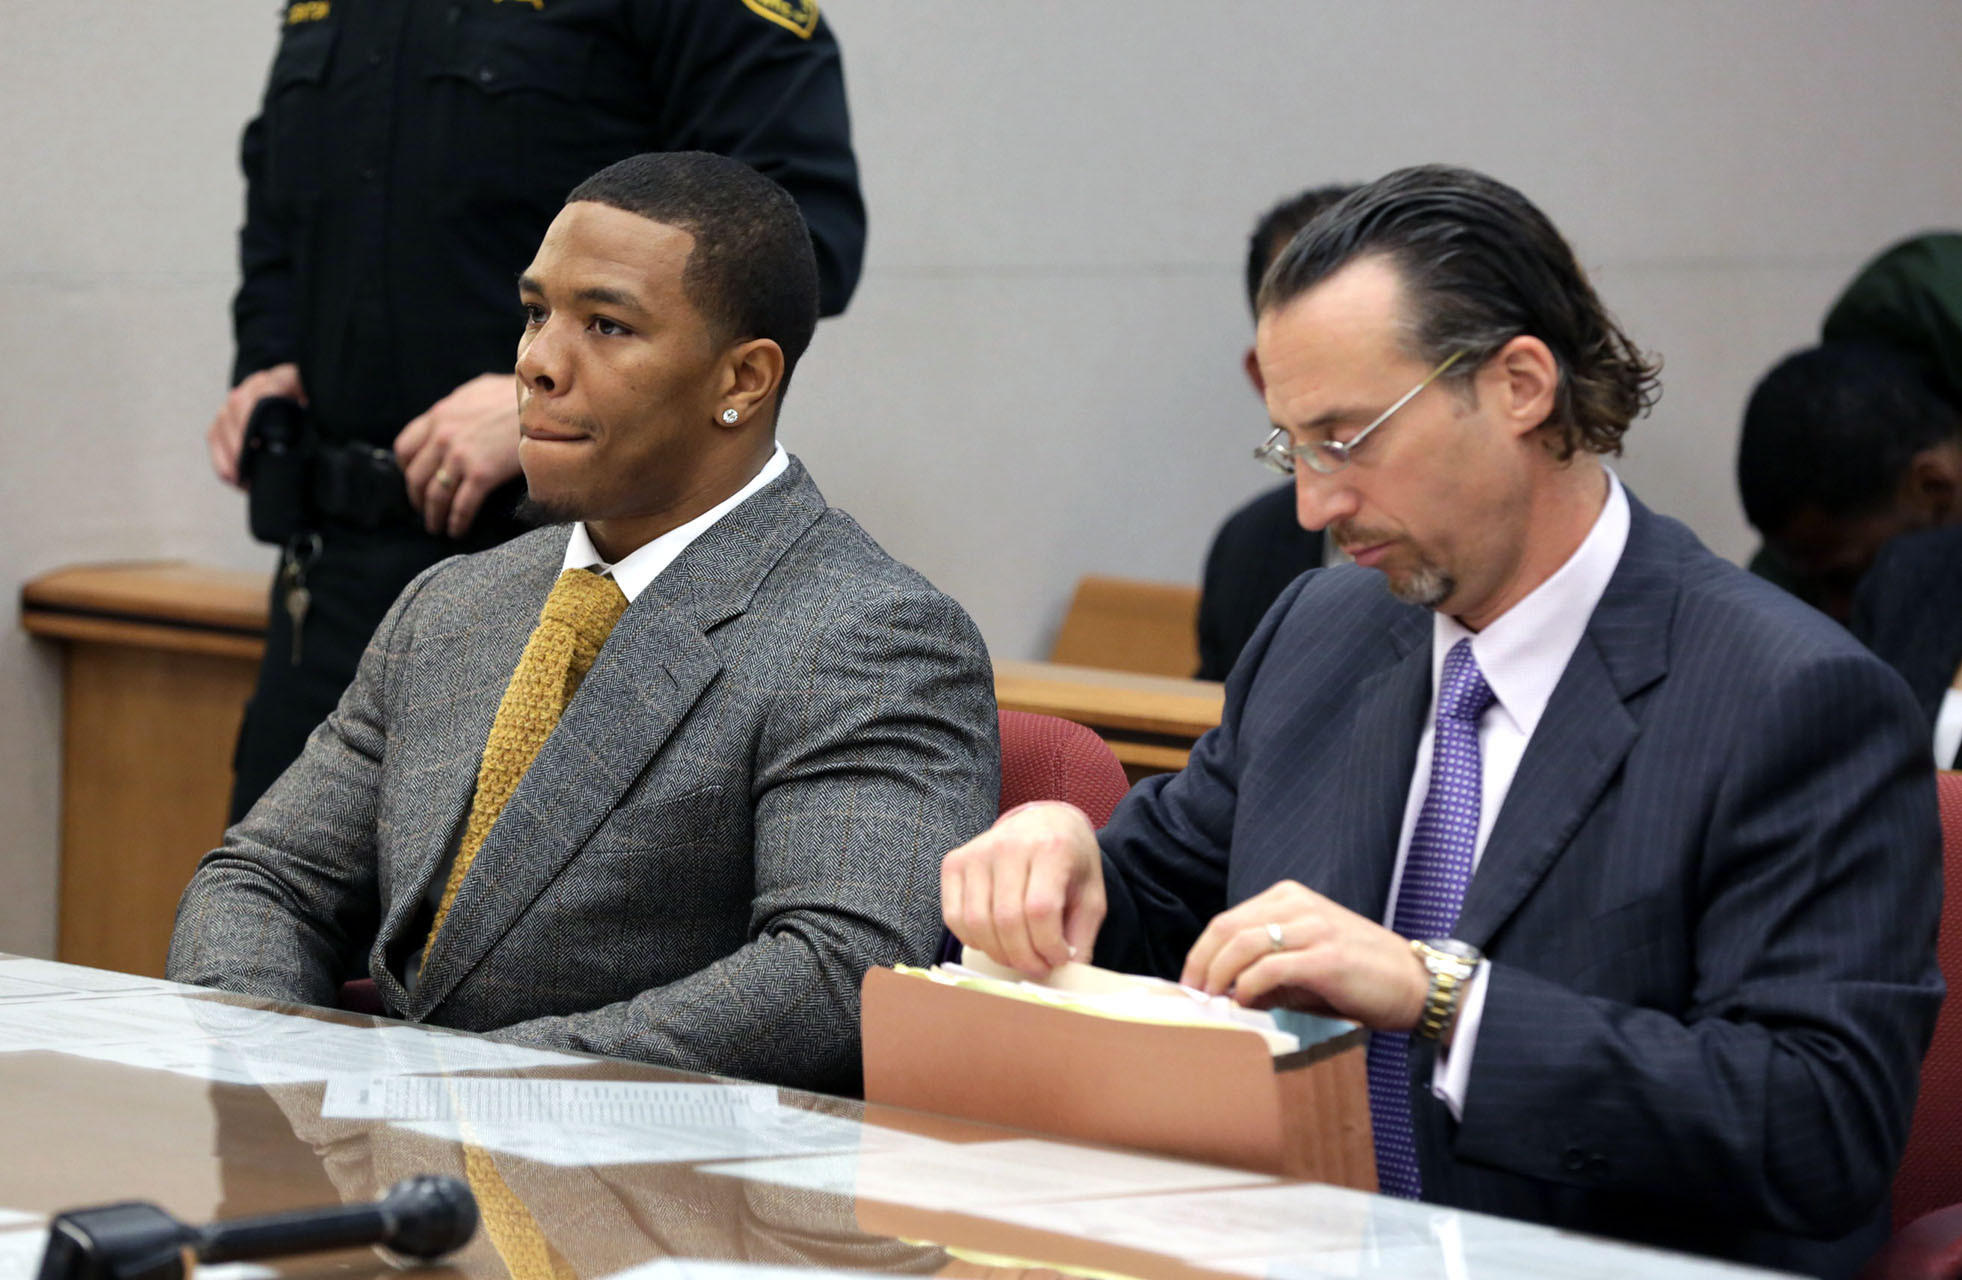 Baltimore Ravens player Ray Rice, left, and lawyer Mike Diamondstein sit in the Atlantic County court house in Mays Landing, Thursday May 1, 2014, for his arraignment. Rice faces assault charges for the alleged assault at Revel in Atlantic City on his now wife.